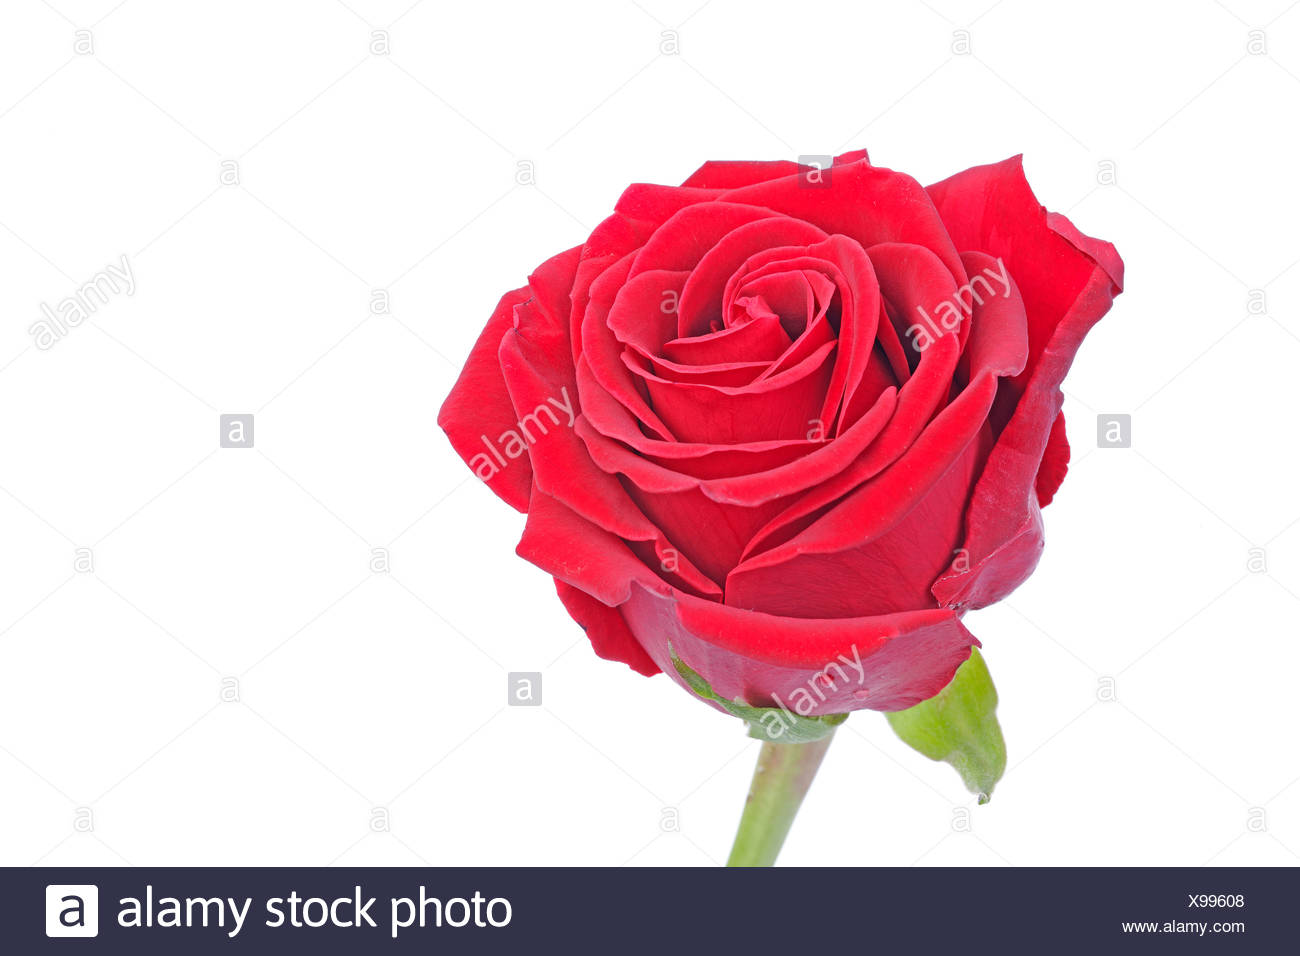 Red Rose (Rosa) Photo Stock